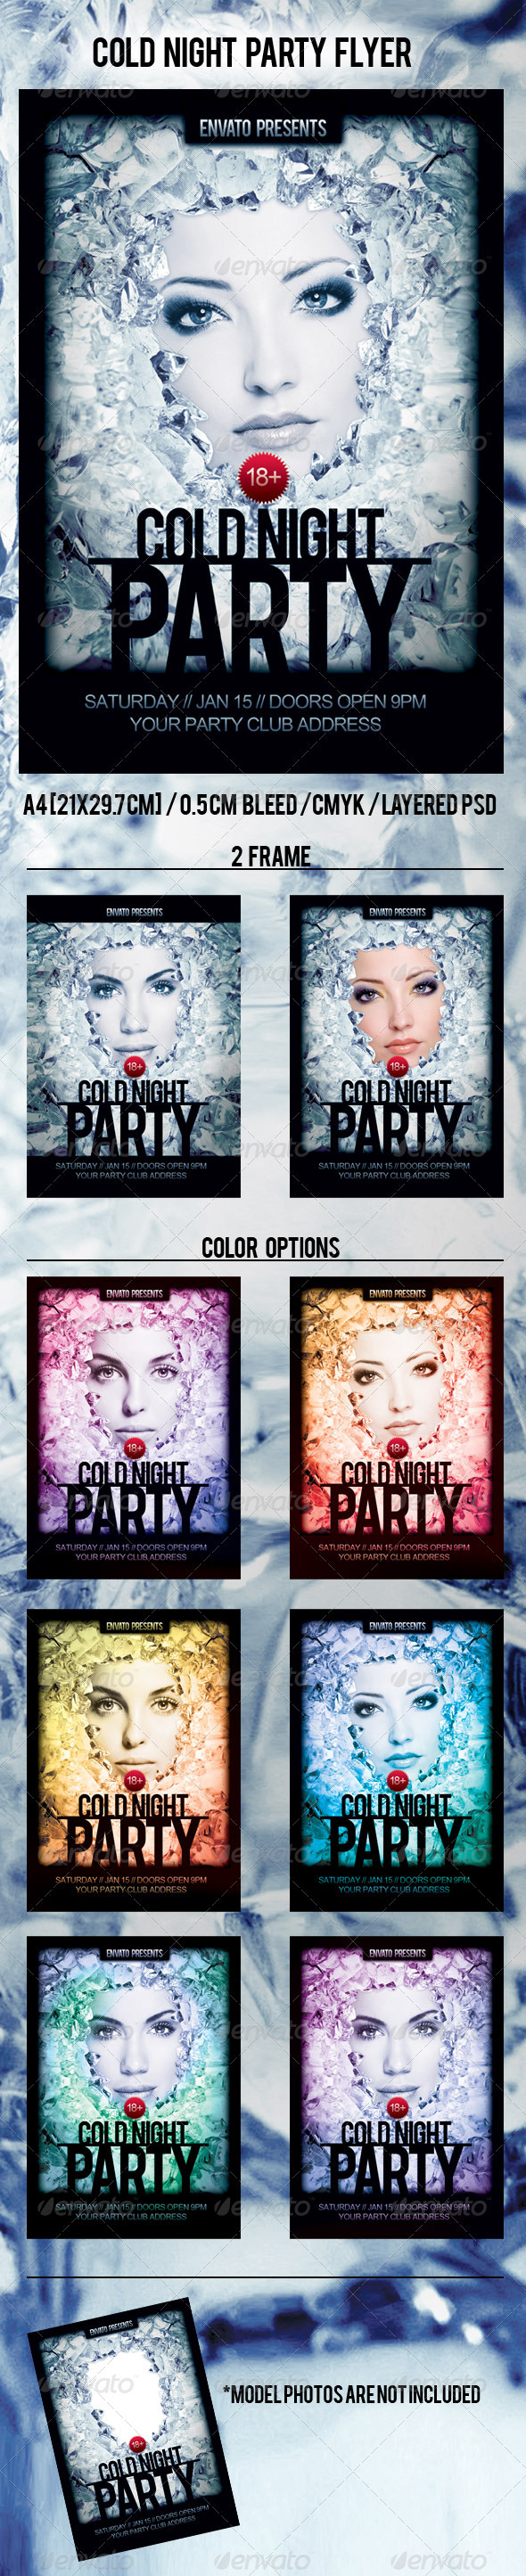 Cold Night Party Flyer - Clubs & Parties Events